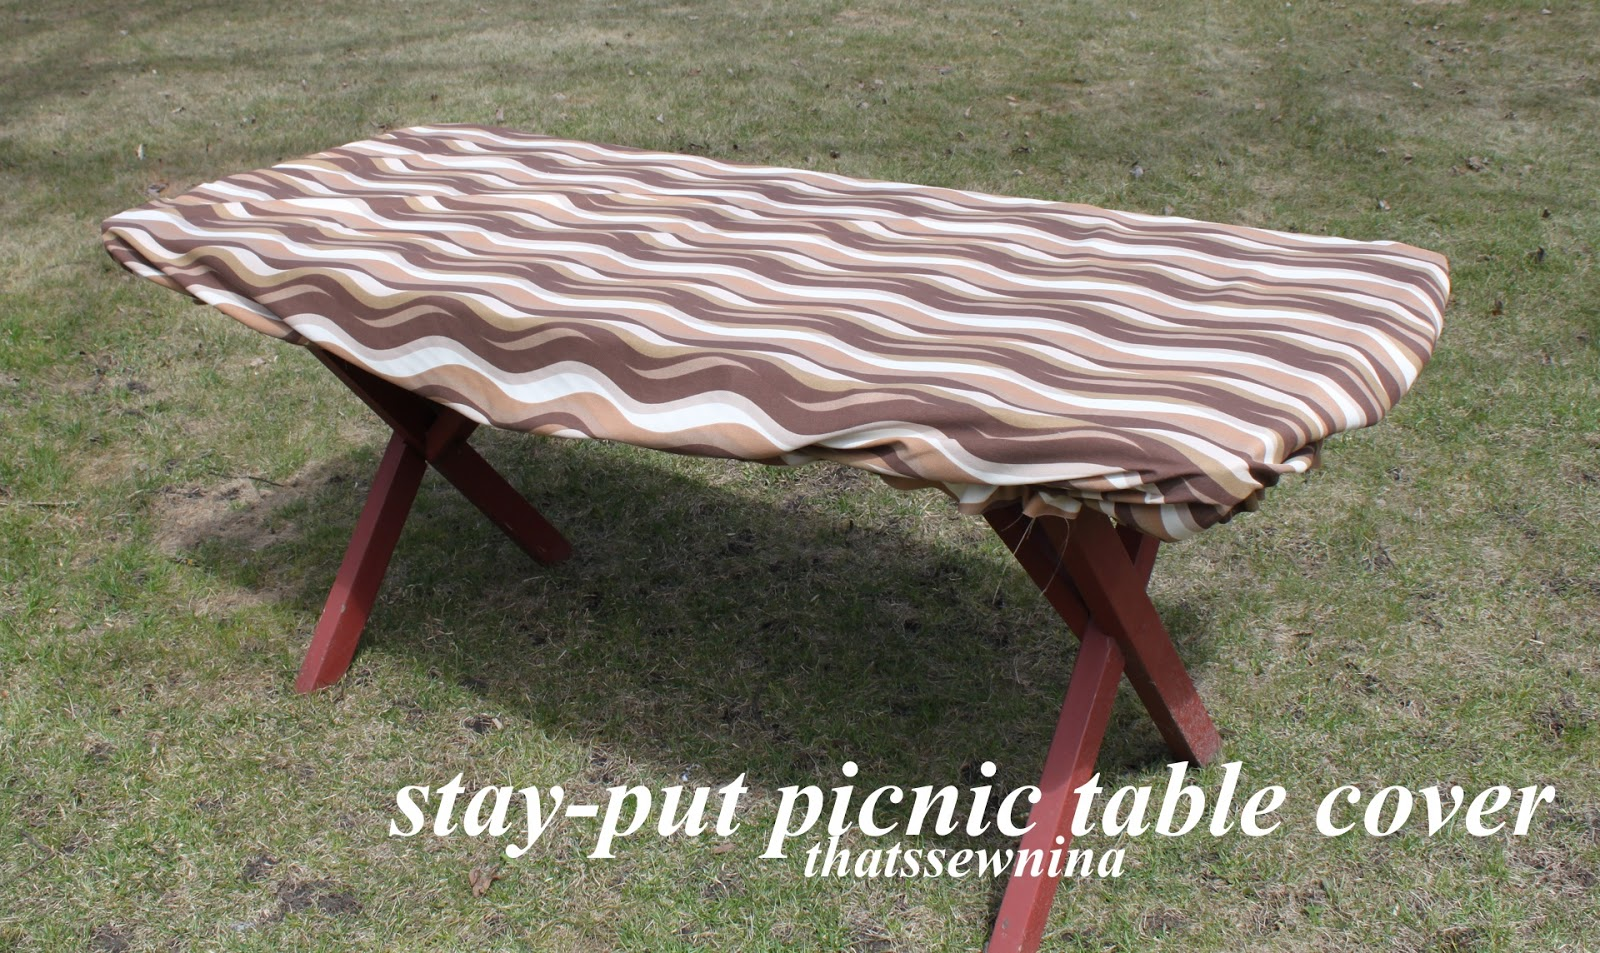 Great Great Idea: A Stay Put Picnic Table Cover